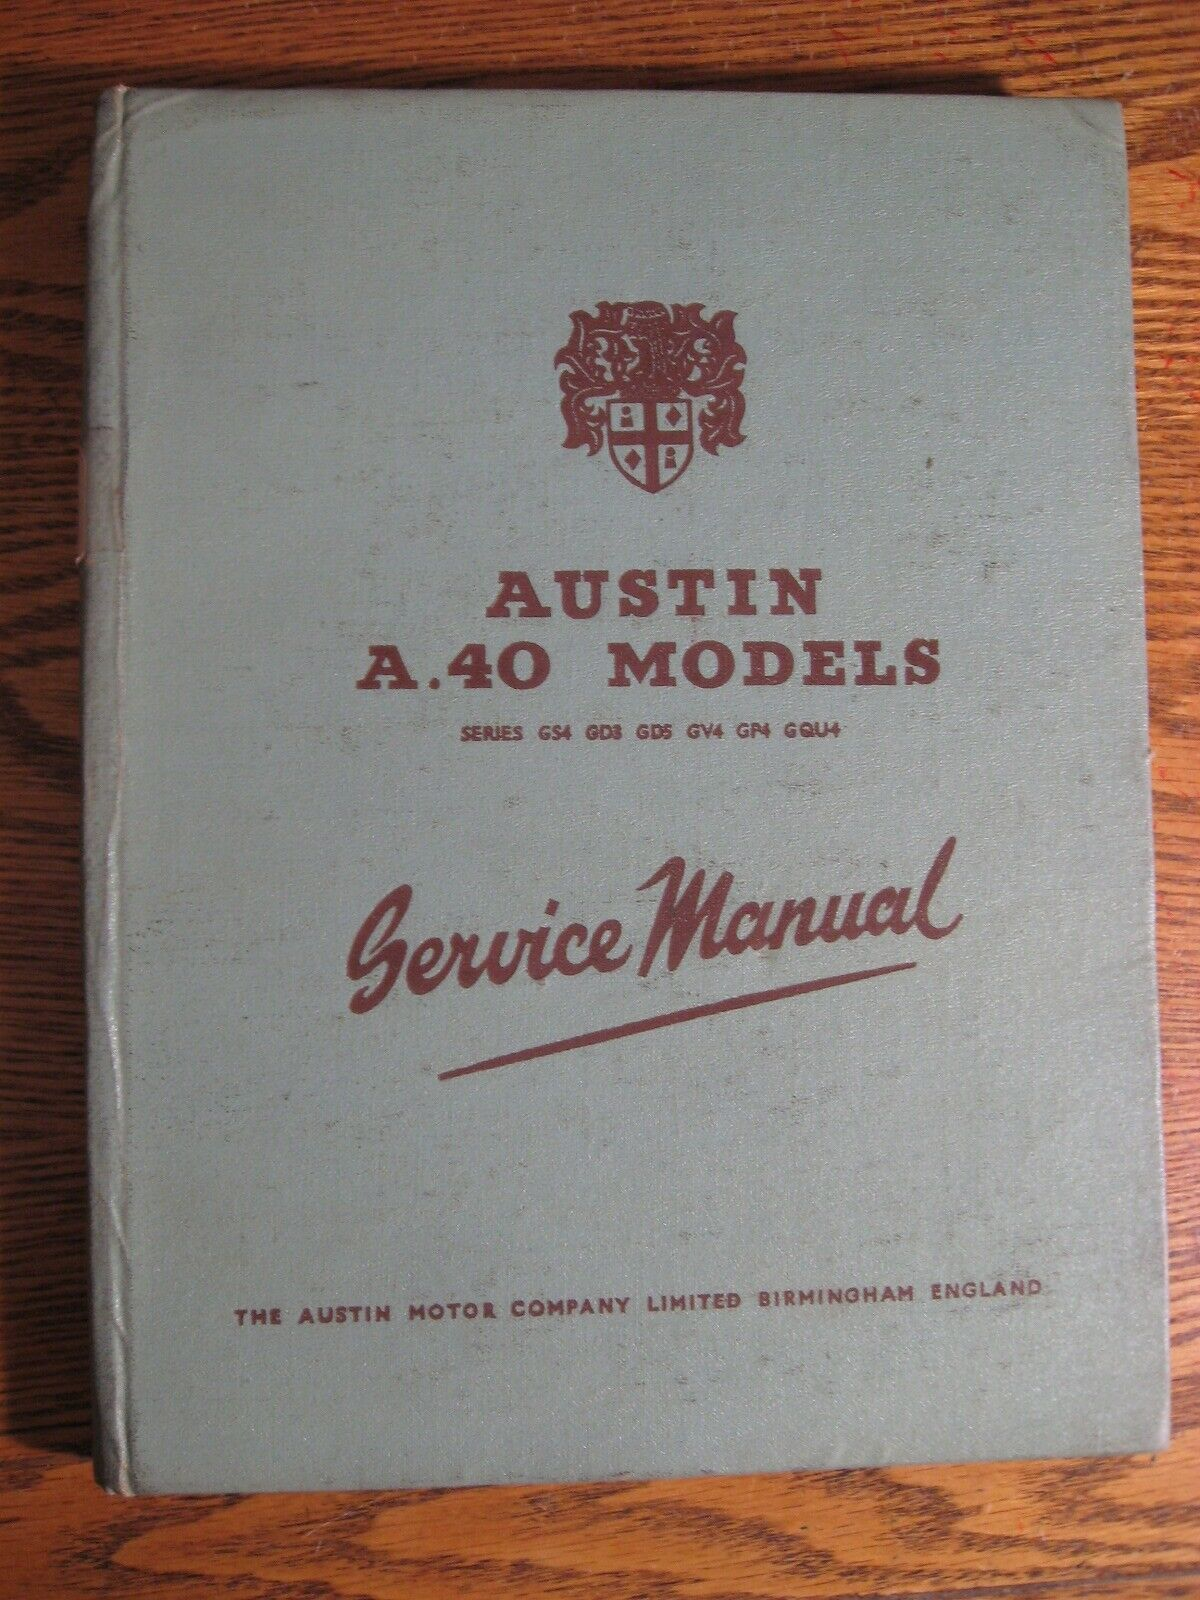 1953 Austin A40 Models Service Manual, Hardcover Original